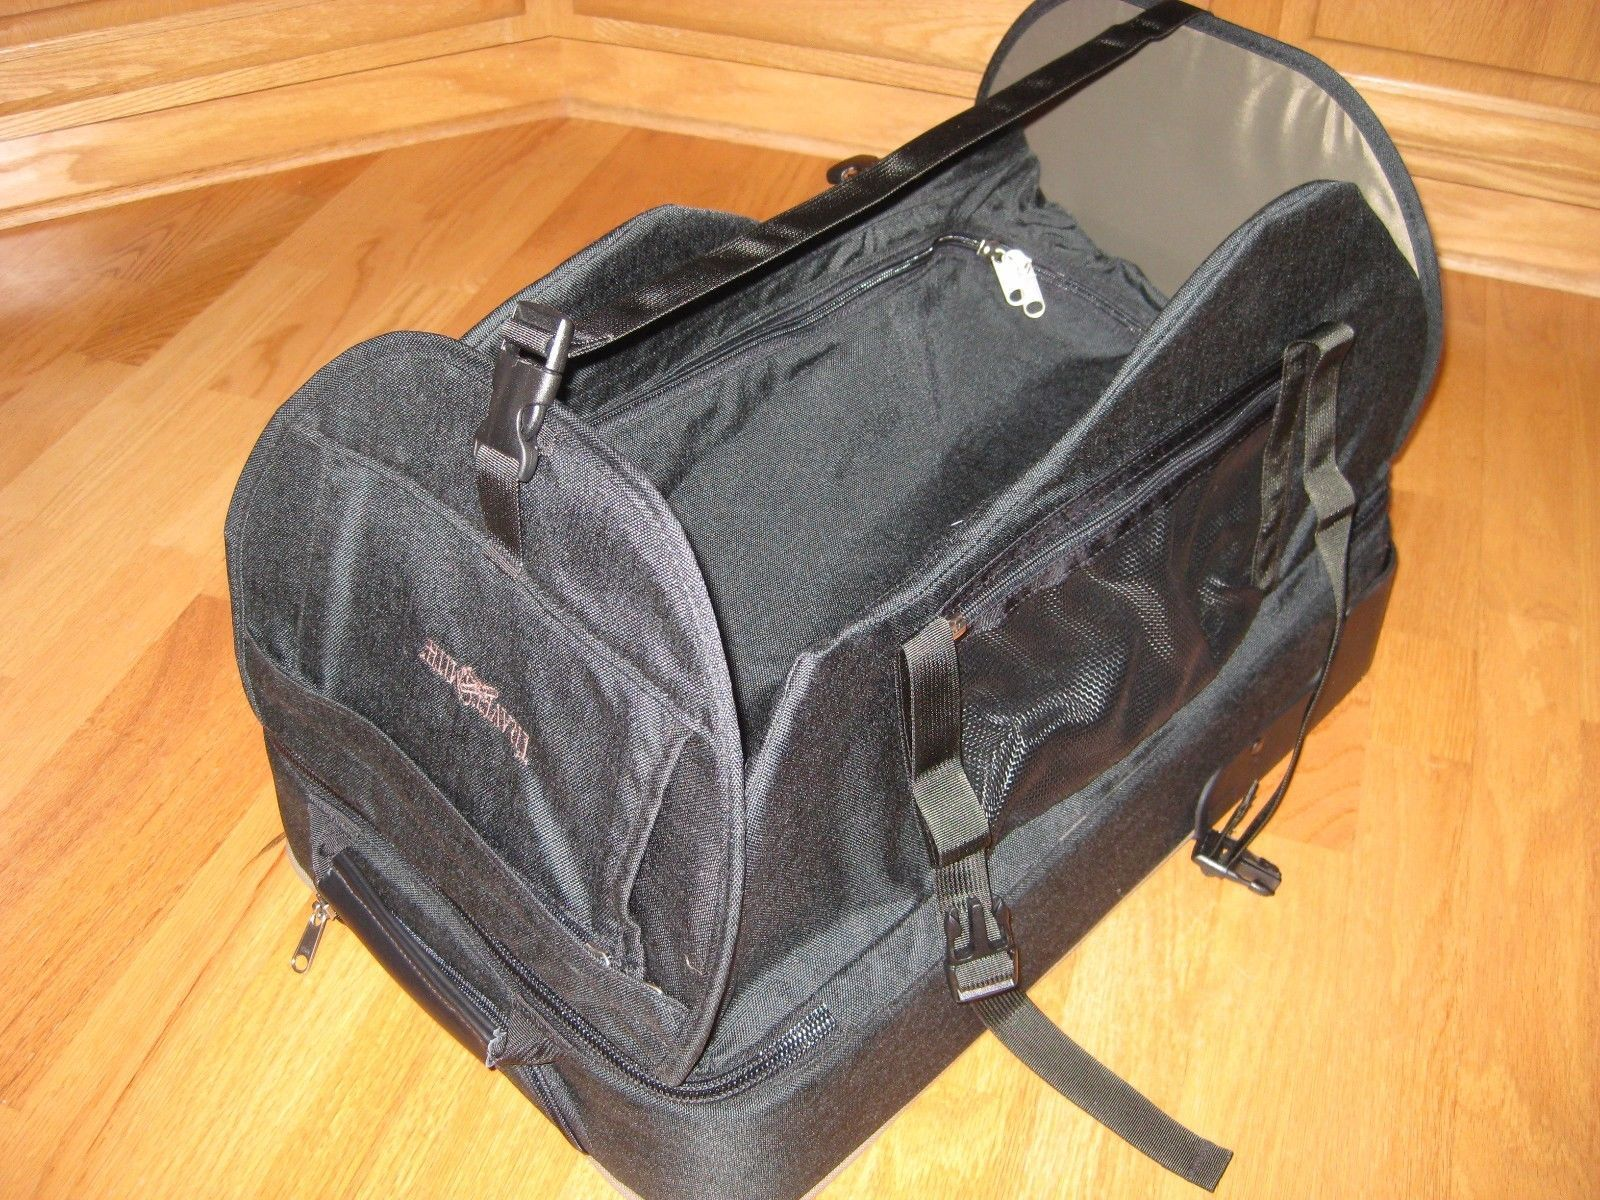 Primary image for Travelsmith folding ballistic nylon suitcase 22 inch, carry on, rolling